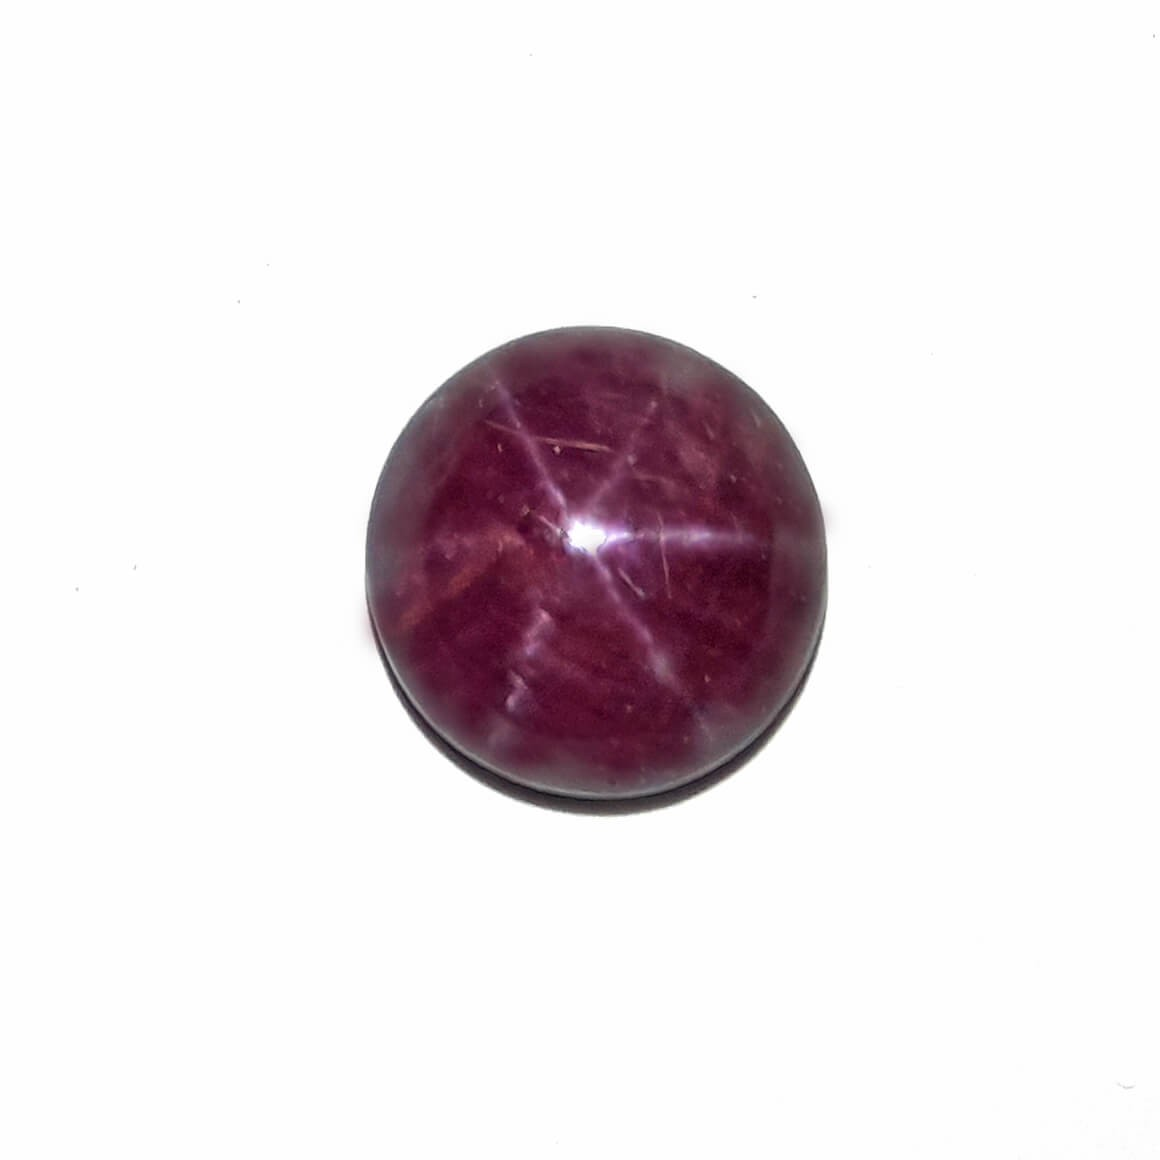 8.26 Carat/ 9.17 Ratti Natural African Star Ruby (Manik) Gemstone